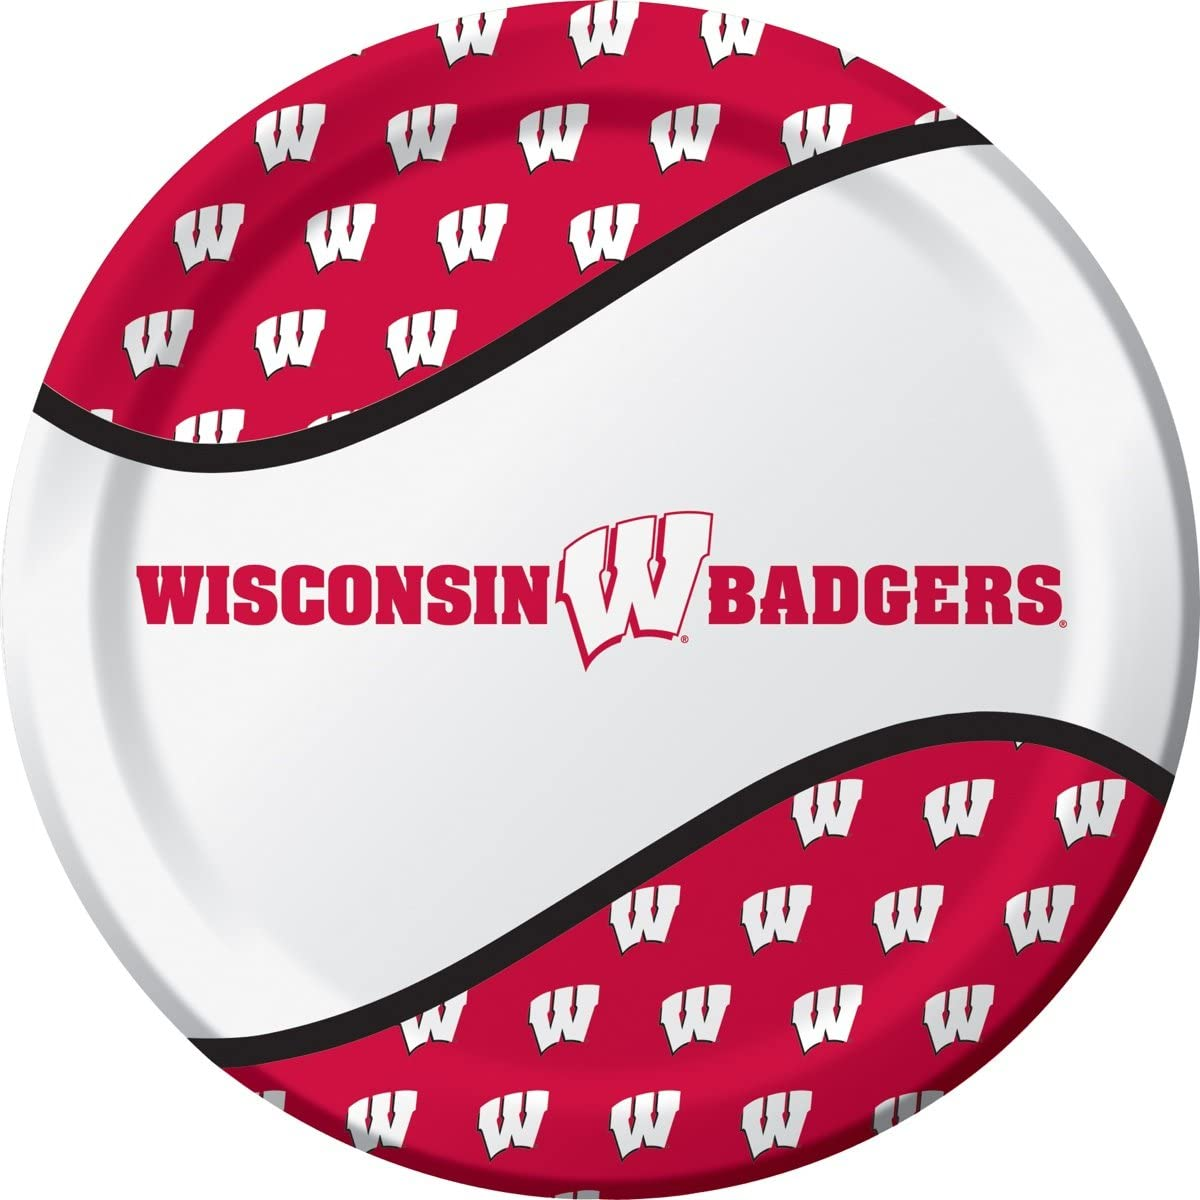 University of Wisconsin Plate and Beverage Bundle 16 Dinner Plates and 20 Beverage Napkins